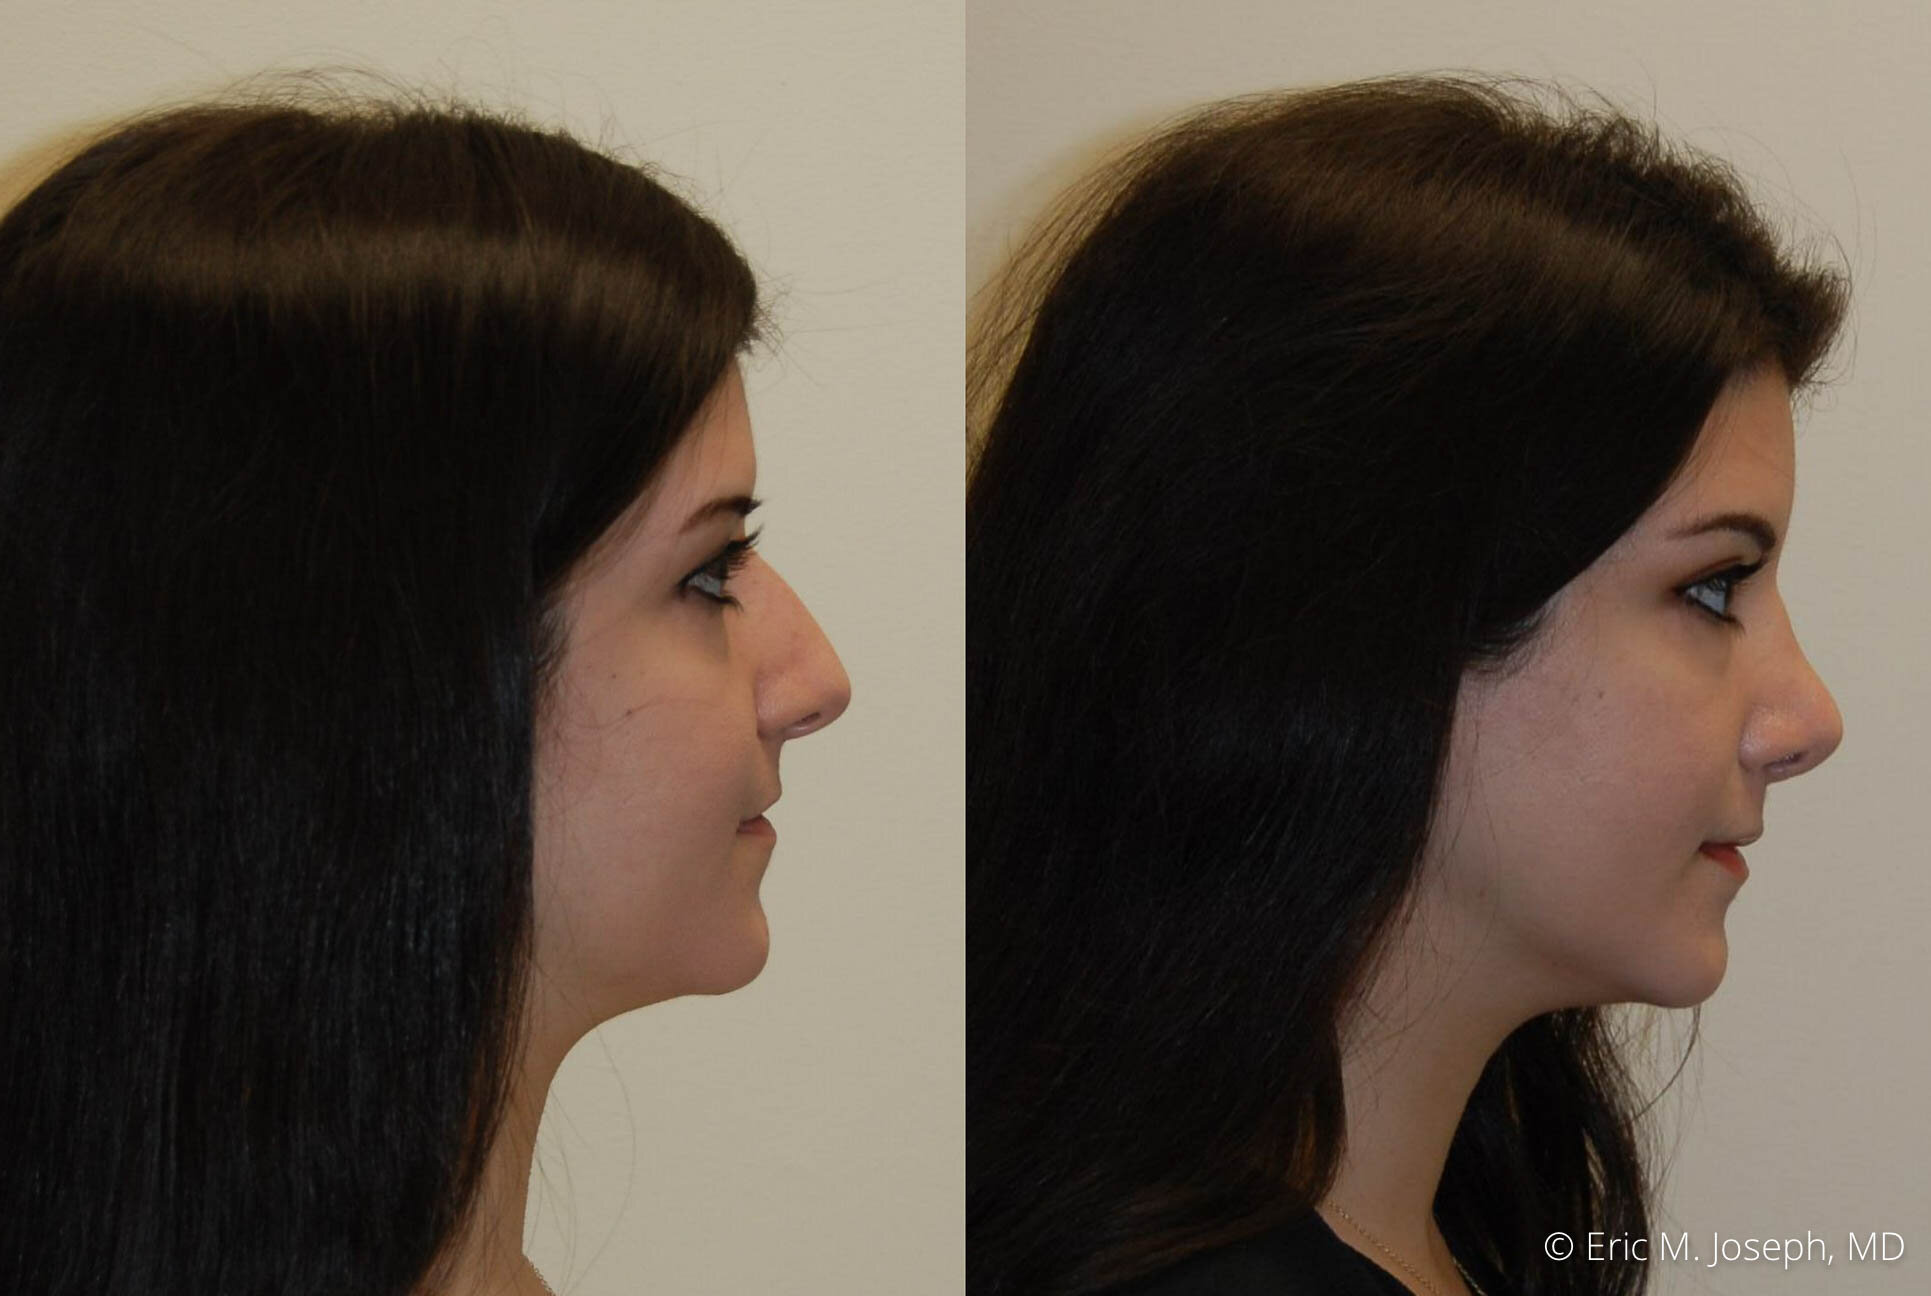 rhinoplasty-nose-job-nyc-nj-0484.jpg